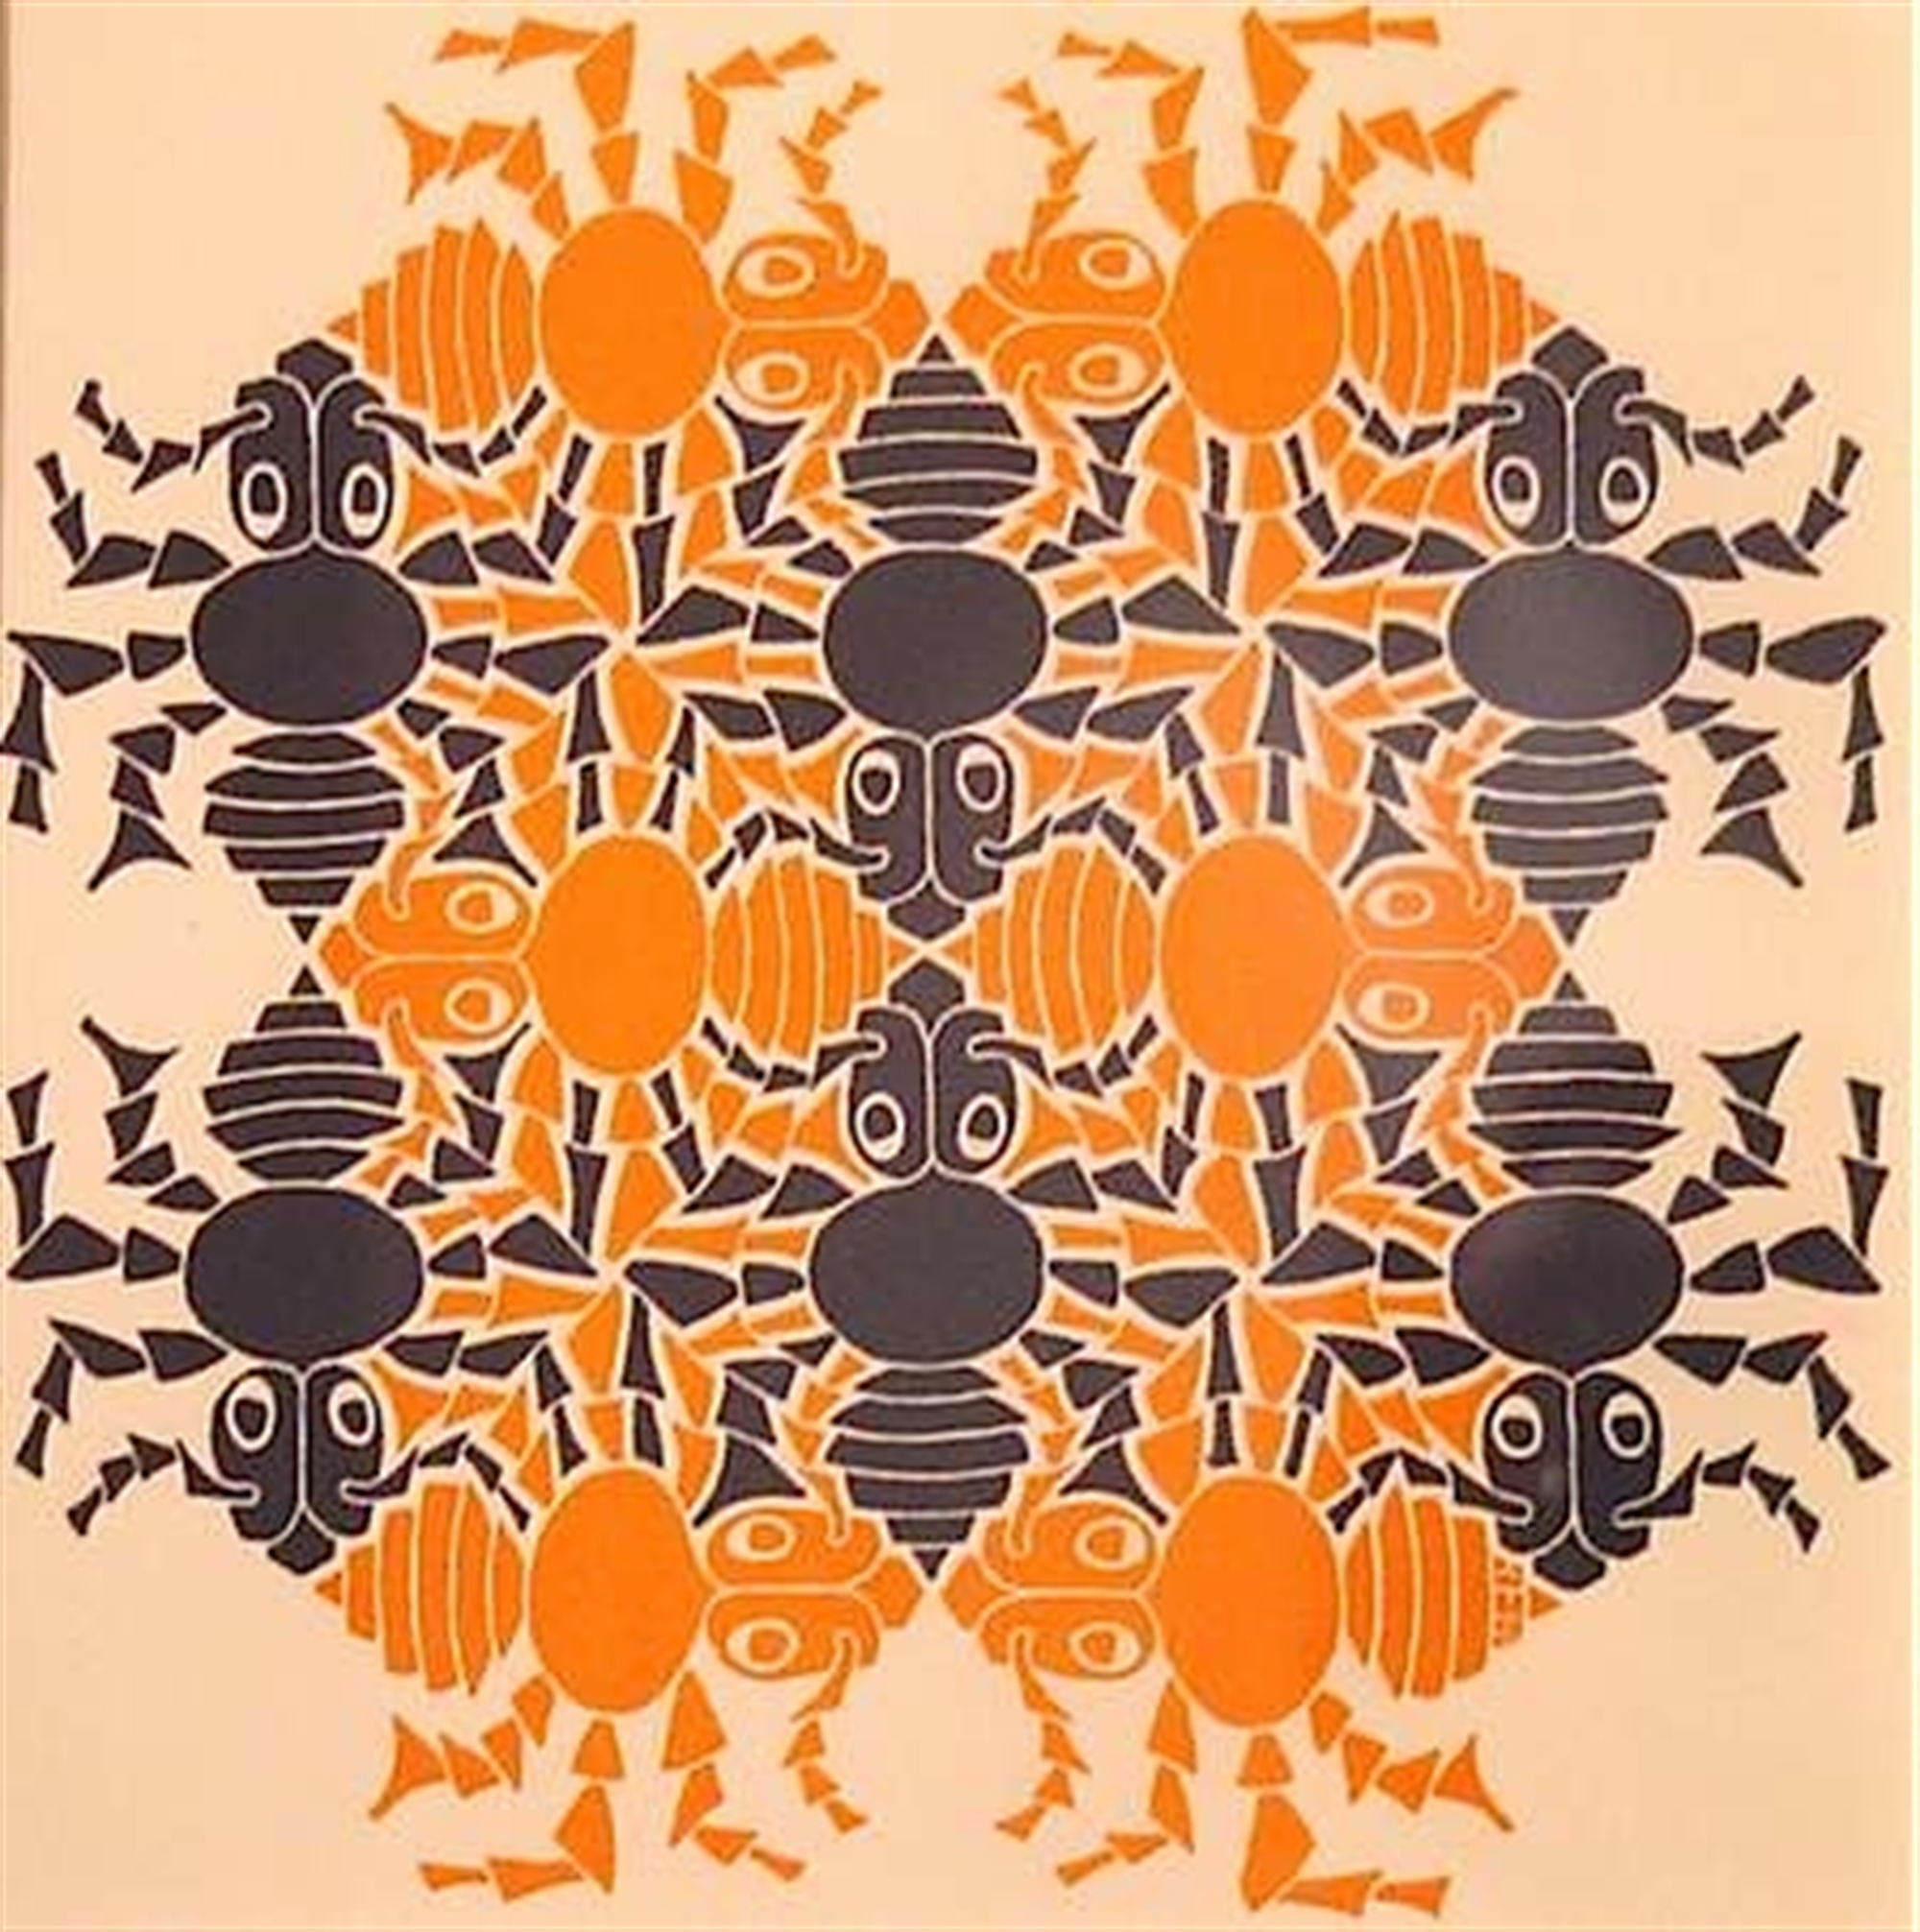 Earth, New Year's Greeting Card (Ants) by M.C. Escher